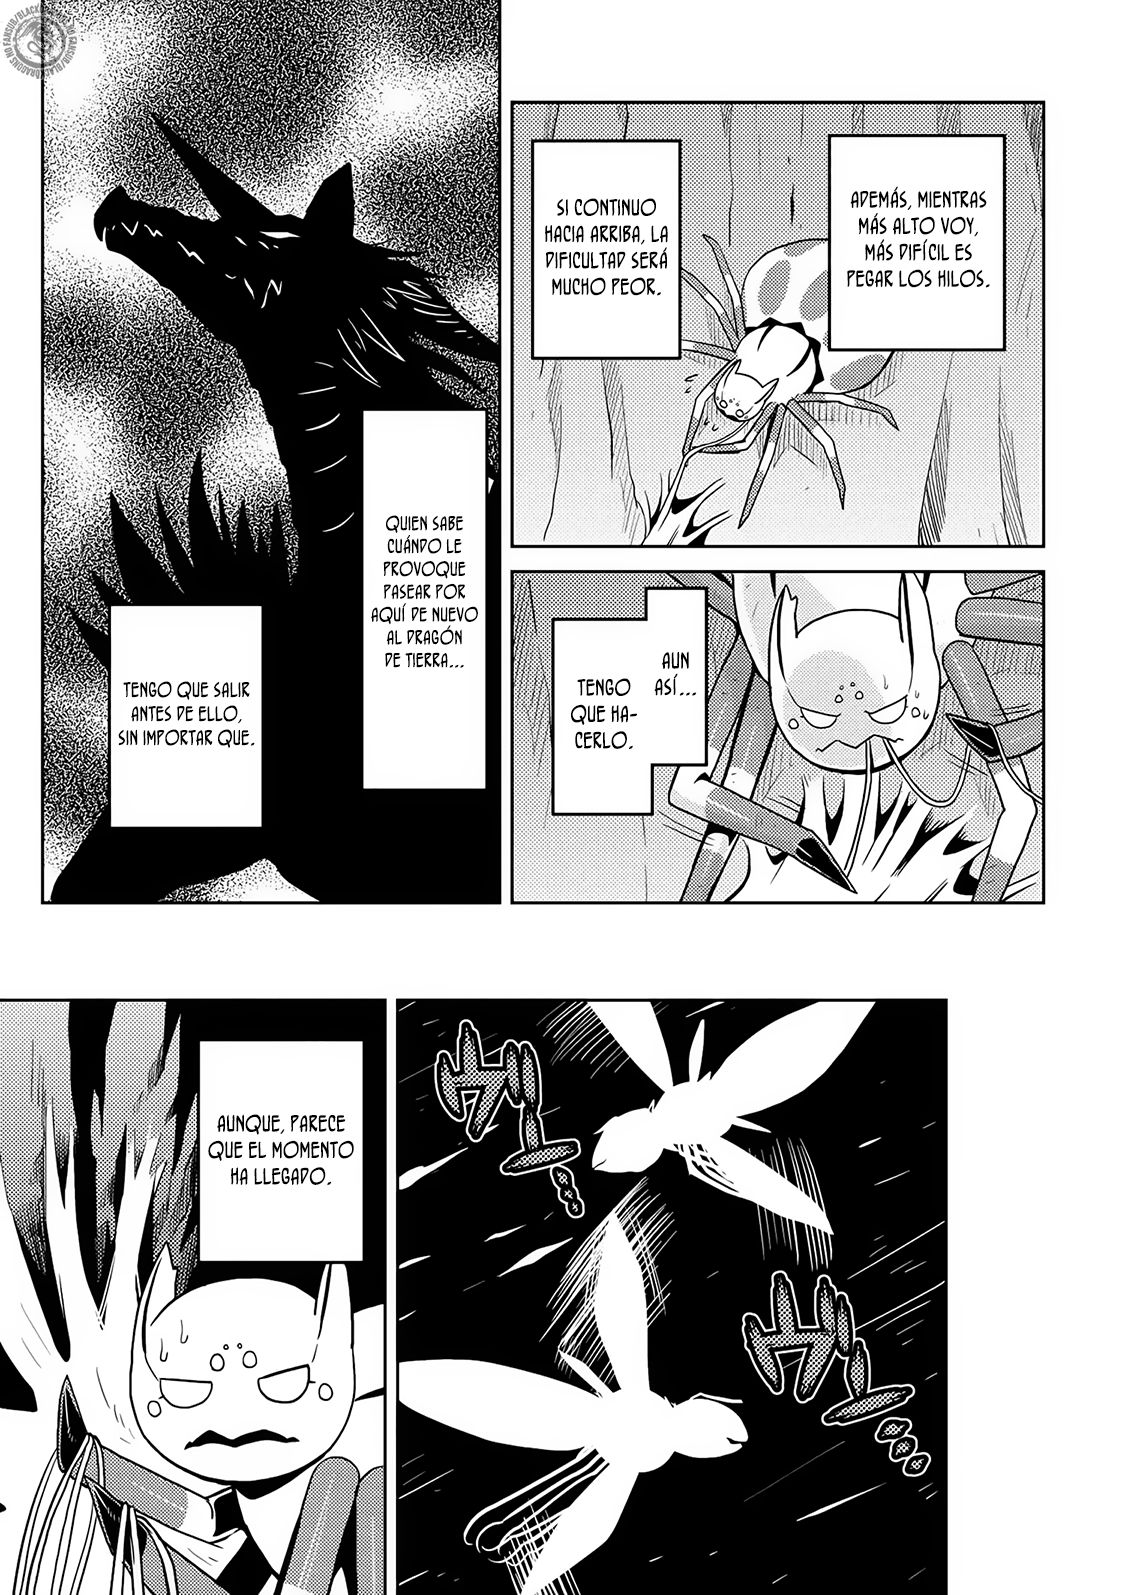 http://c5.ninemanga.com/es_manga/59/18683/487953/144d7111b7126a9a938f3113403b15d6.jpg Page 16